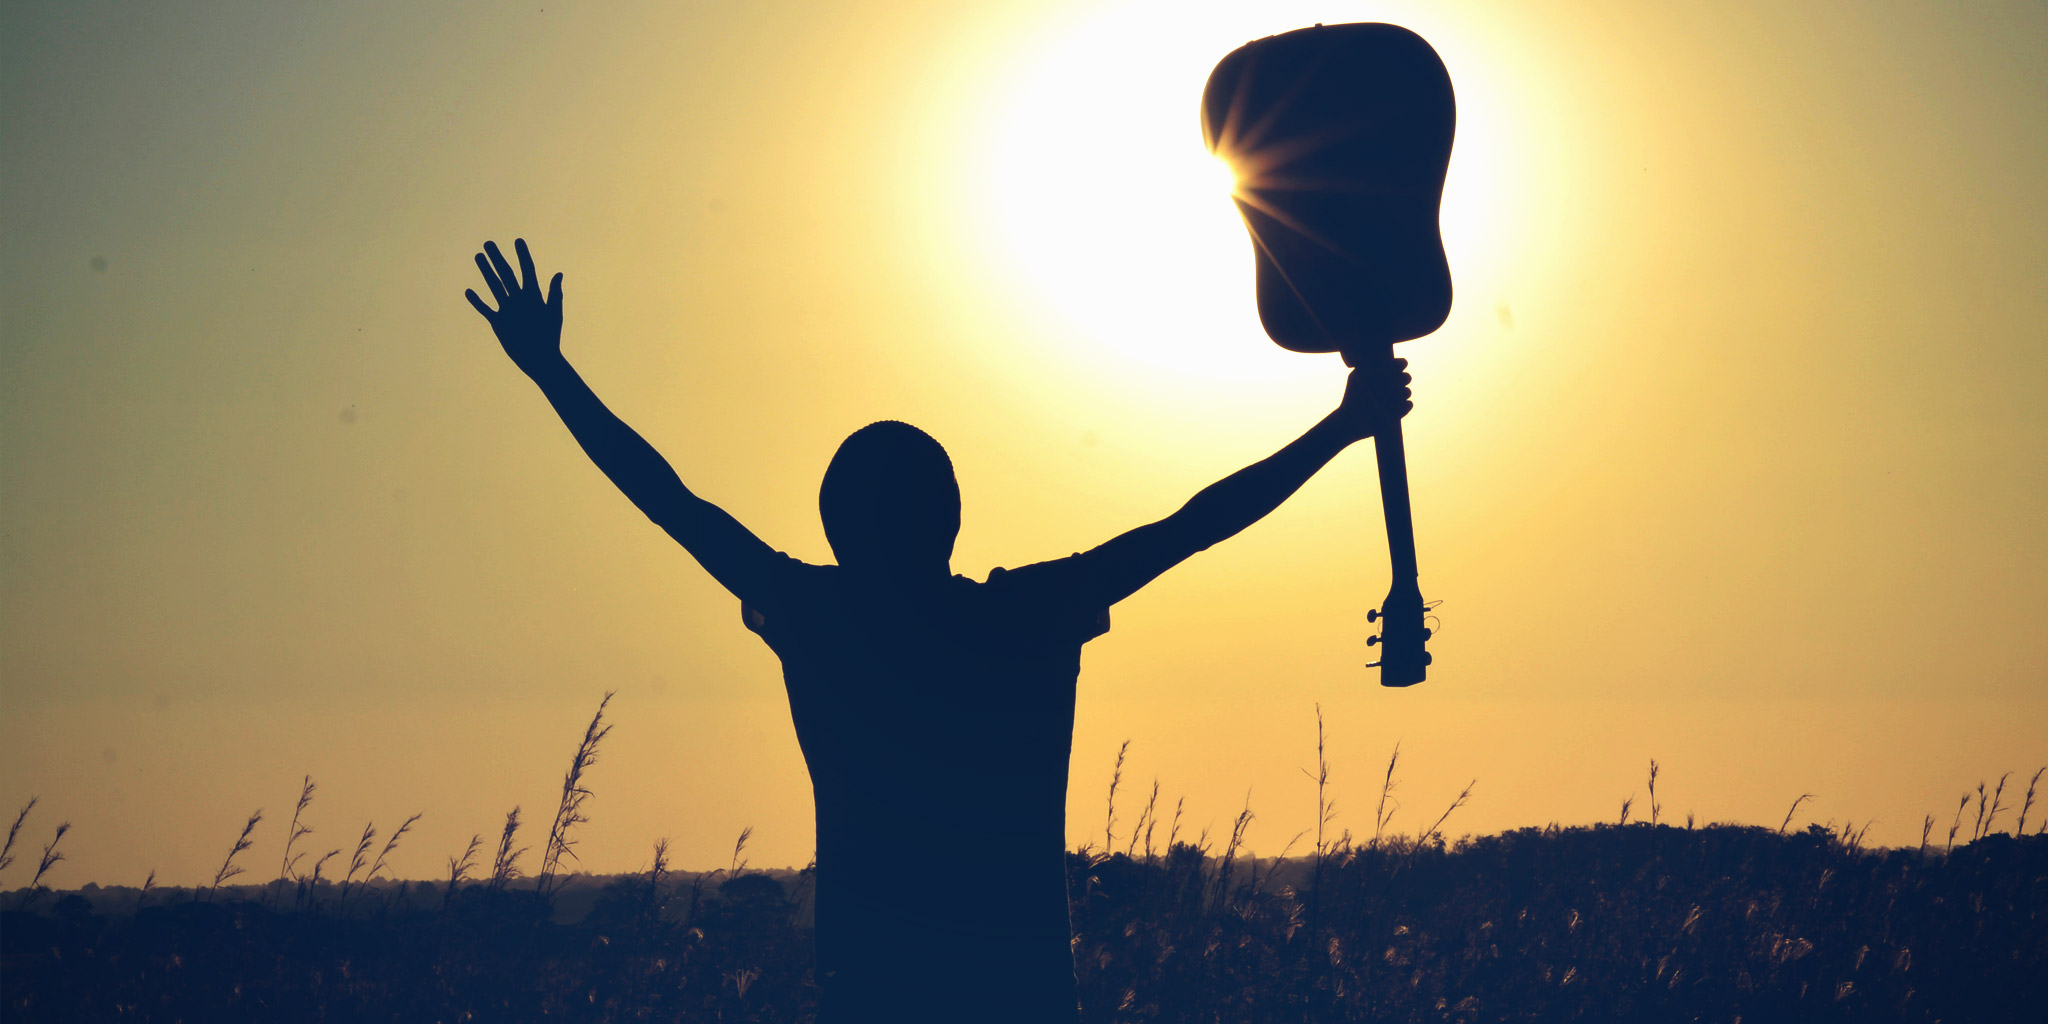 When music is your side gig: how to stay motivated, efficient, and sane